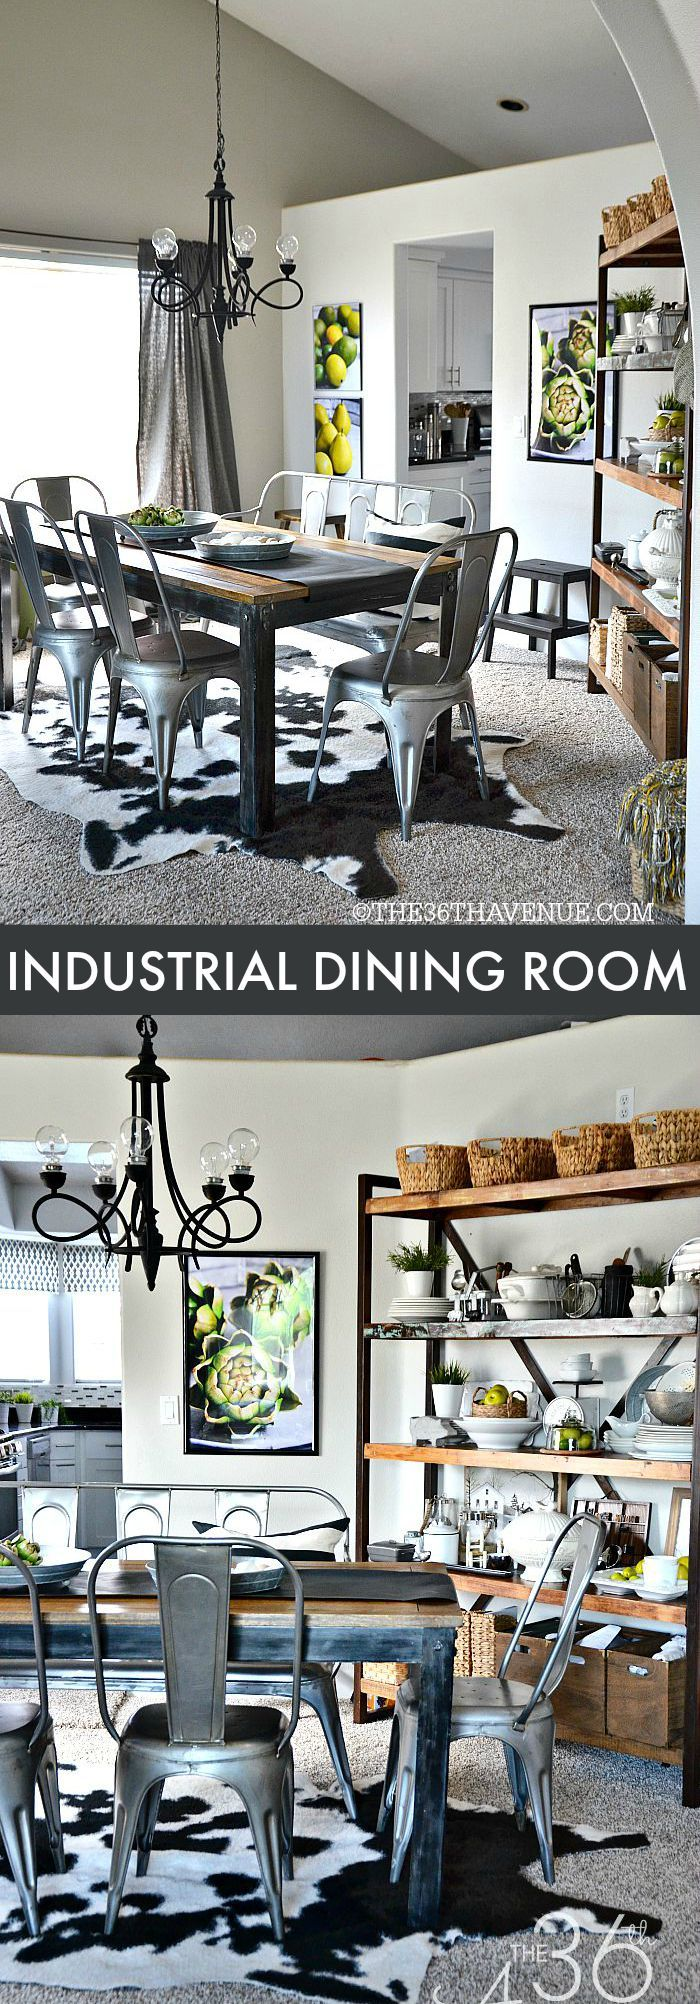 Diy industrial dining room table - Best 25 Industrial Dining Tables Ideas On Pinterest Industrial Dining Rooms Industrial Style Dining Table And Black Dining Room Chairs